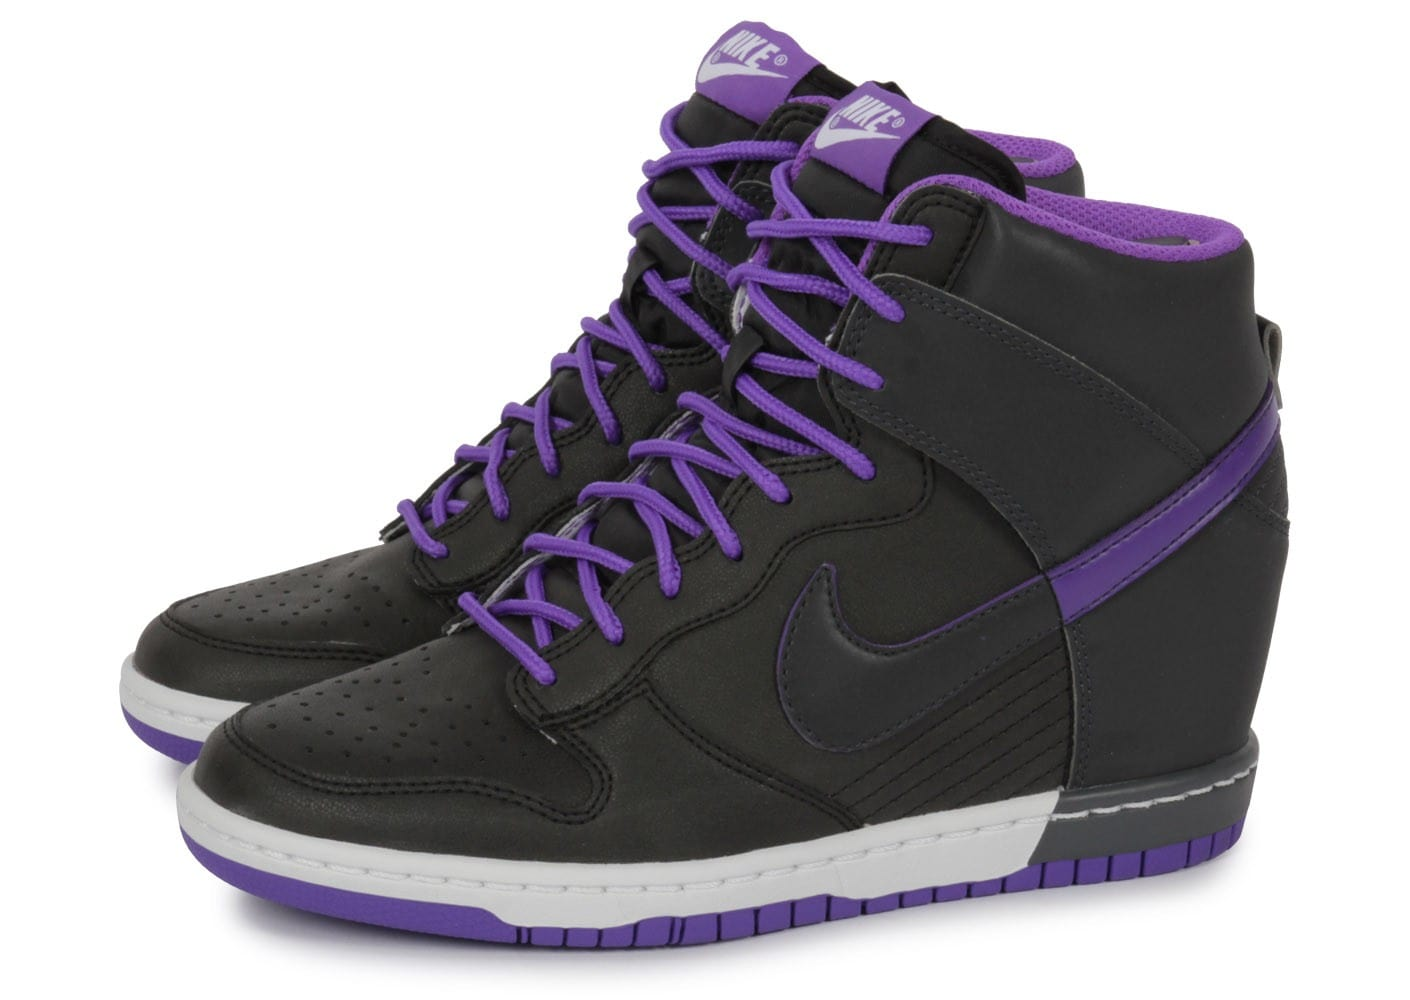 Nike Hi Dunk Sky Hi Nike Anthracite Chaussures Chaussures Chausport 2d0138